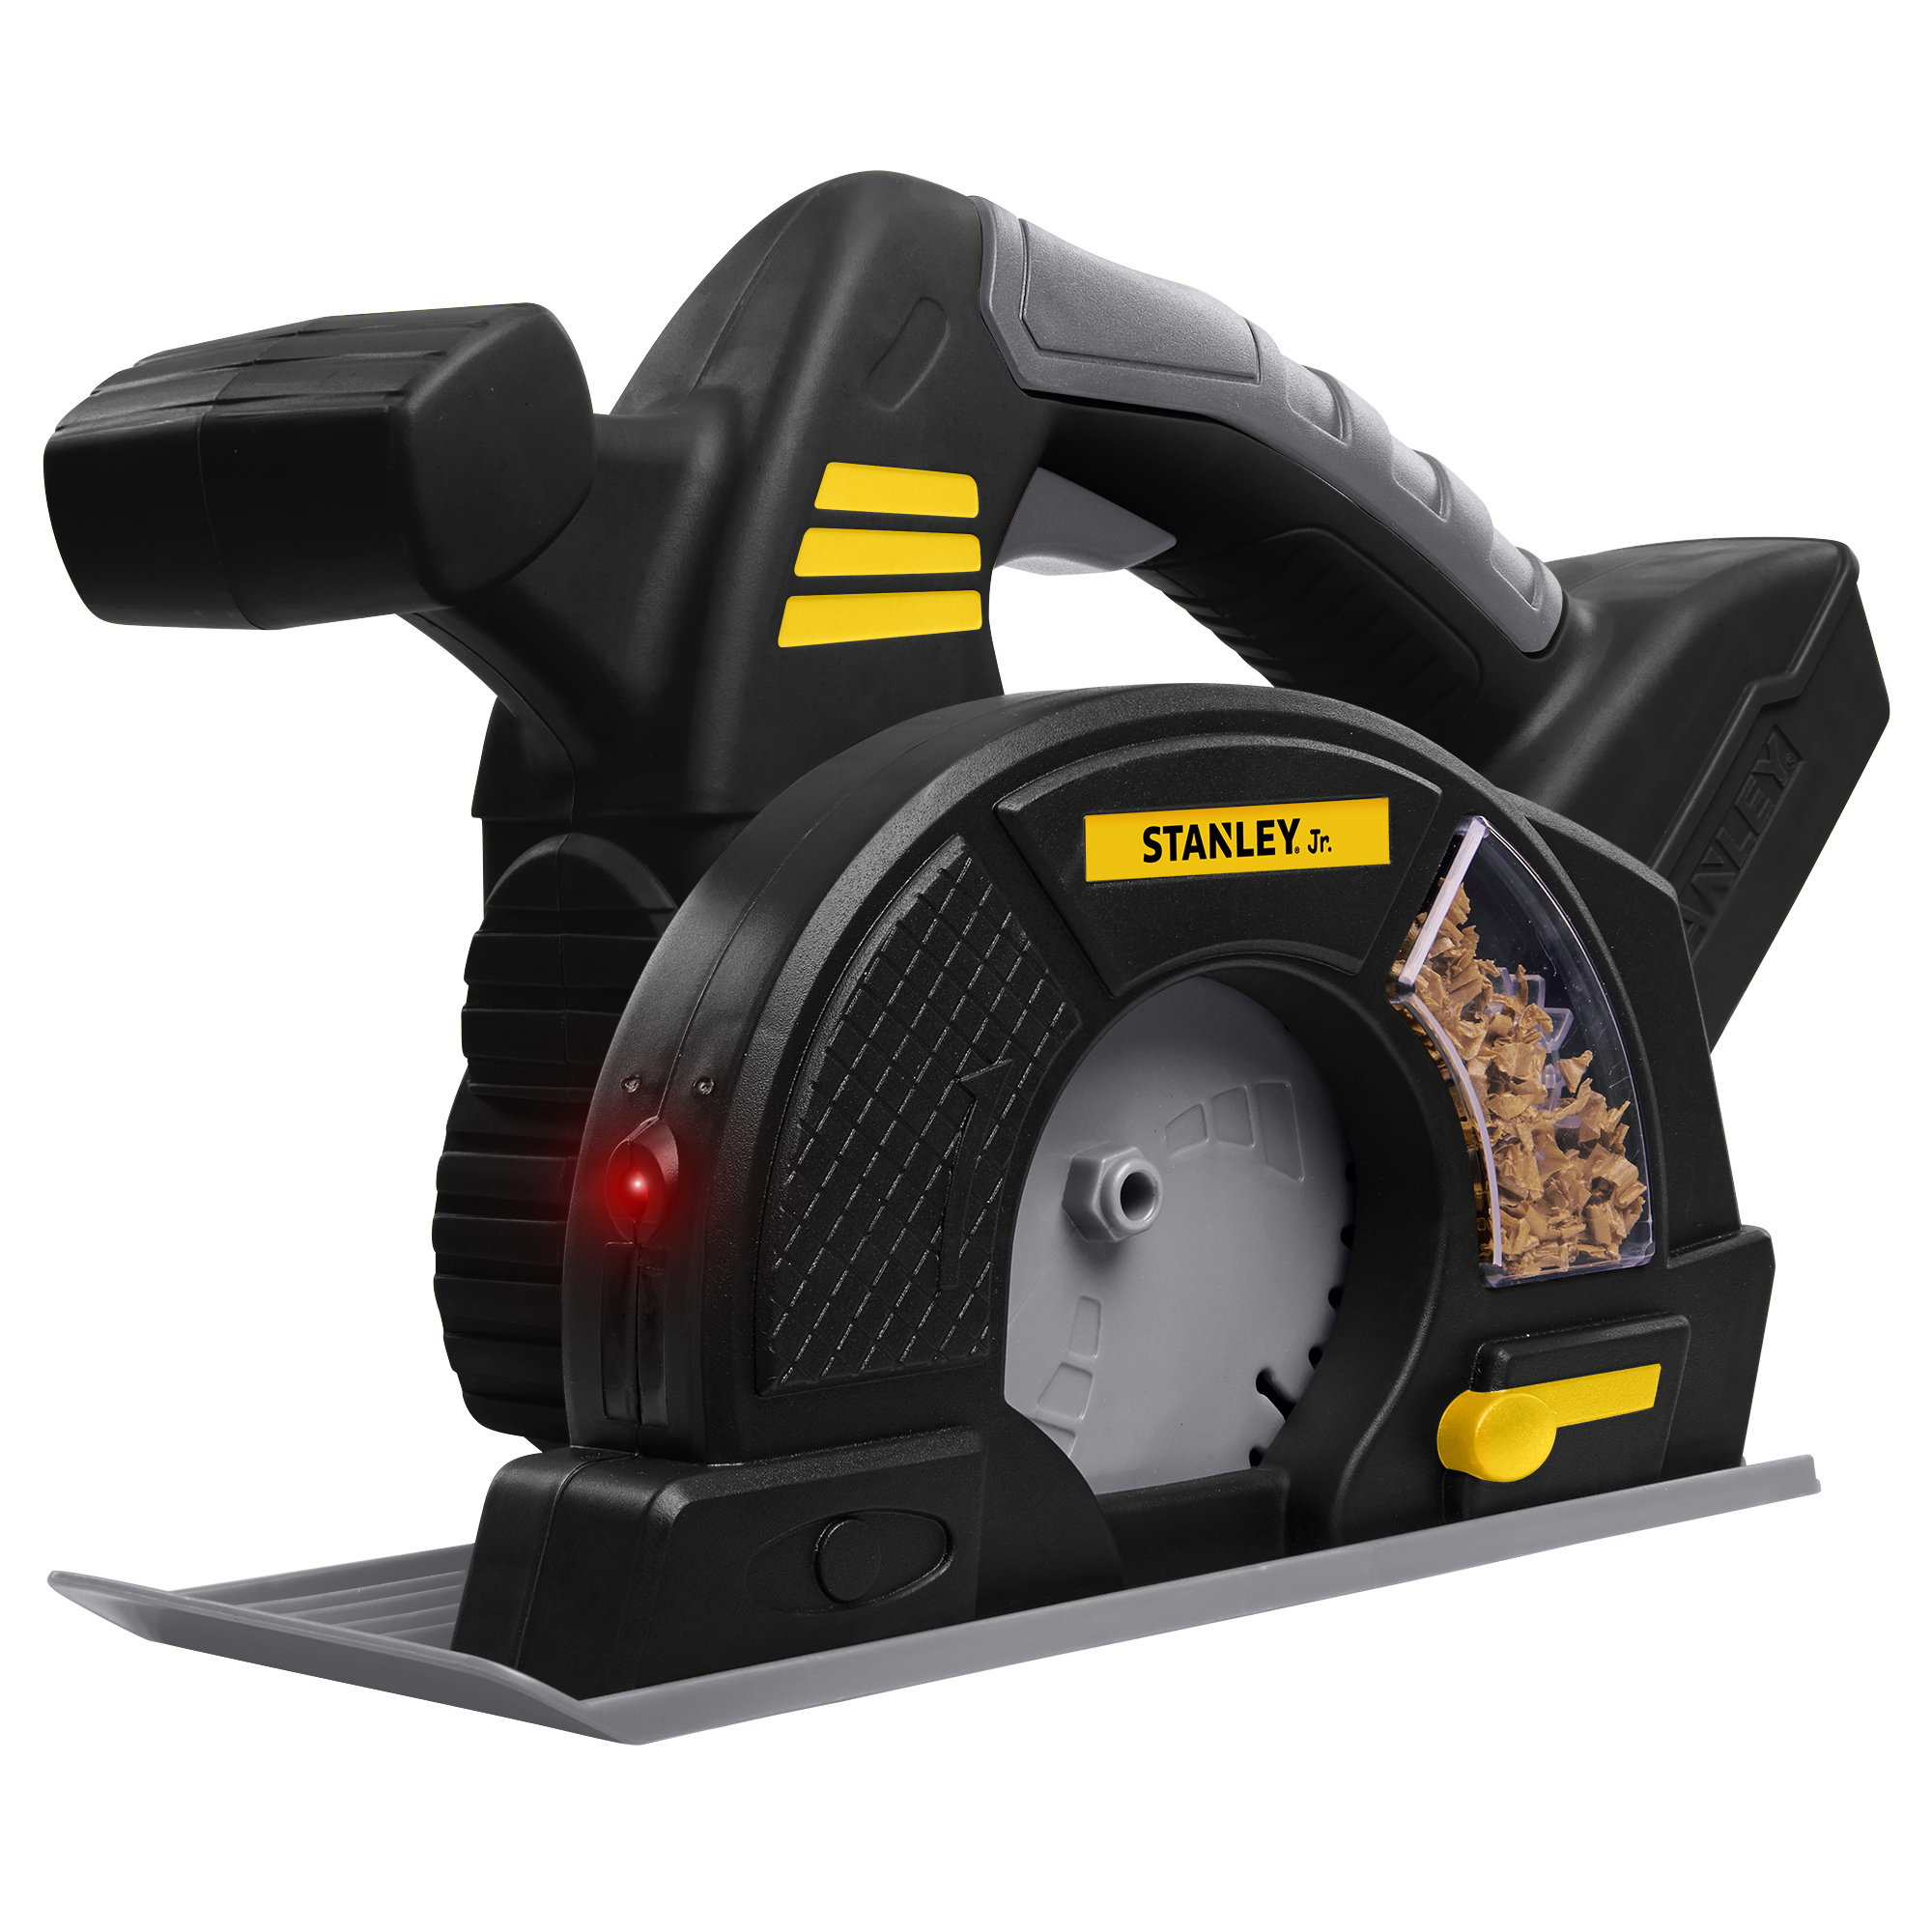 STANLEY™ Jr Circular Saw